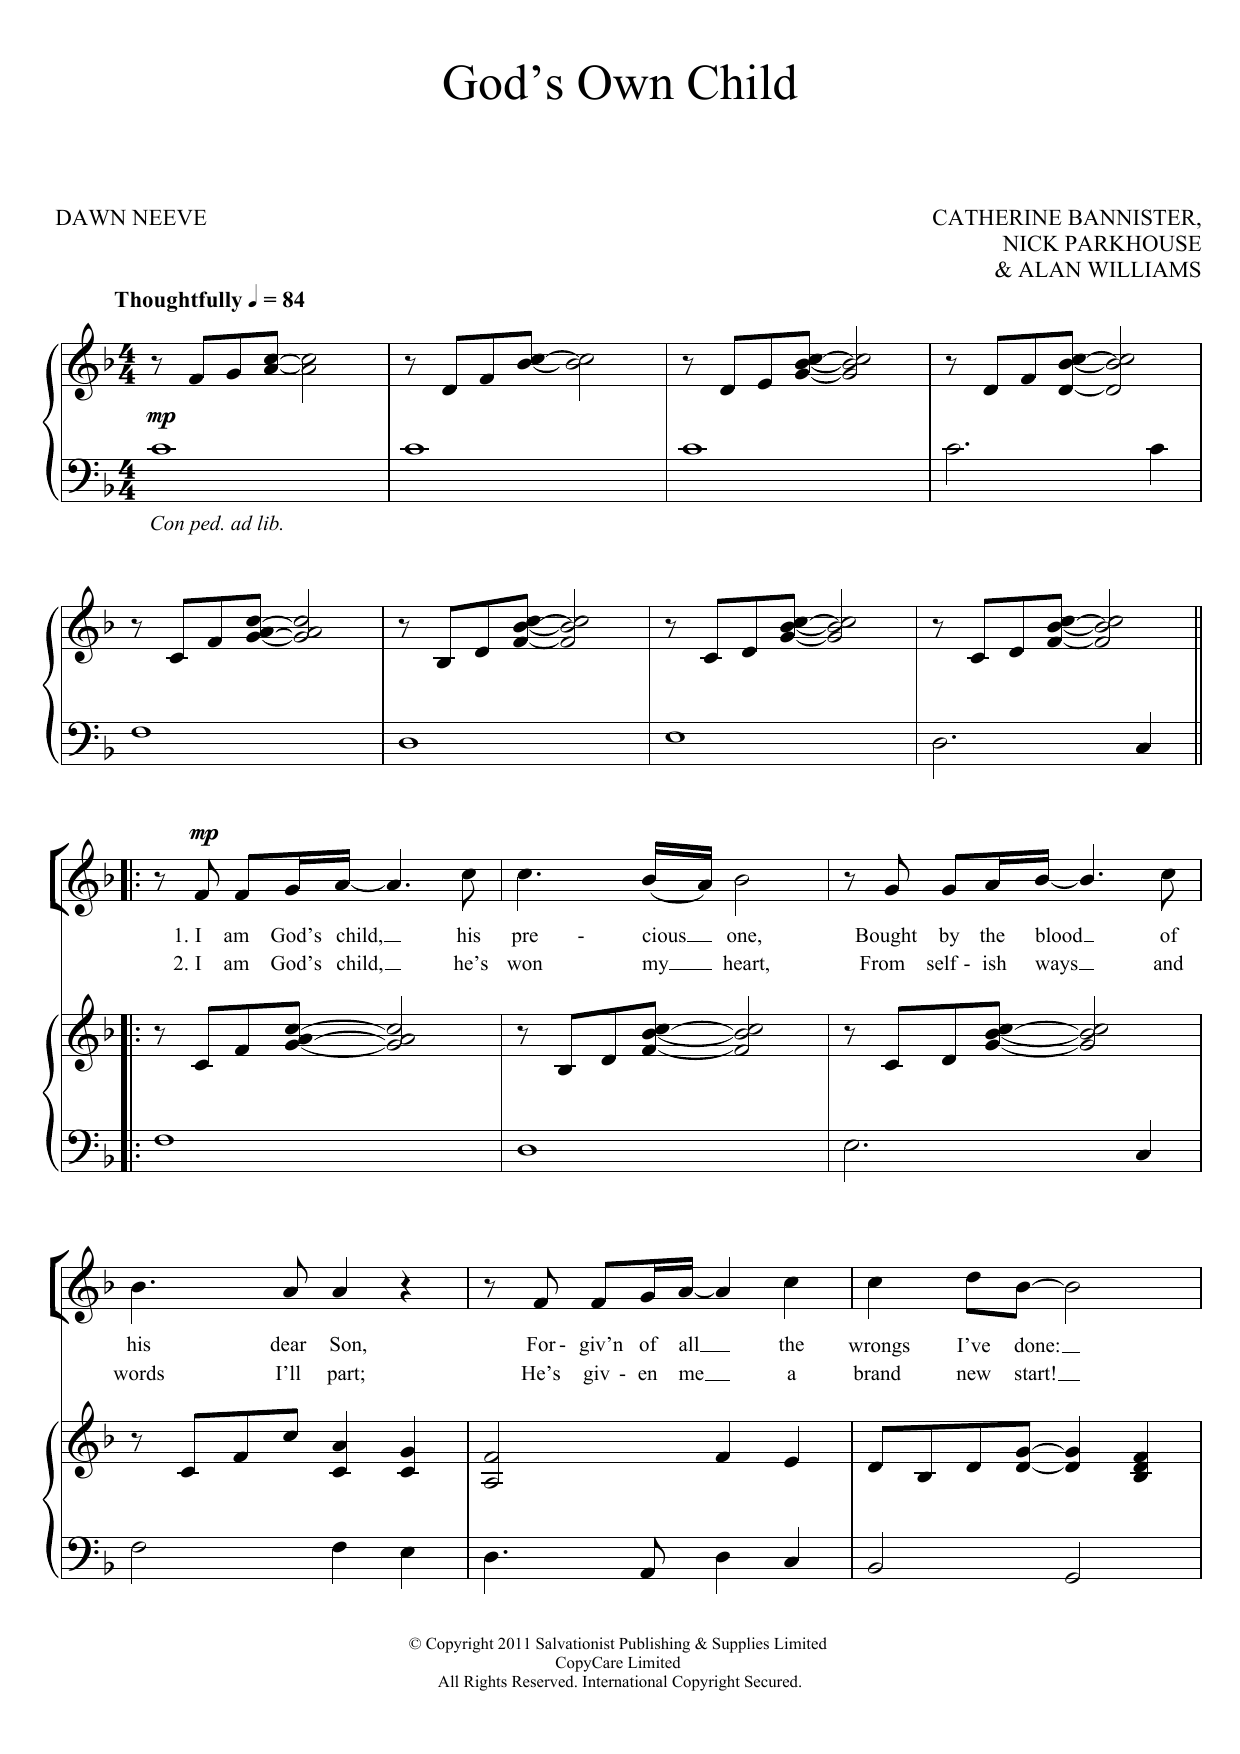 God's Own Child Sheet Music